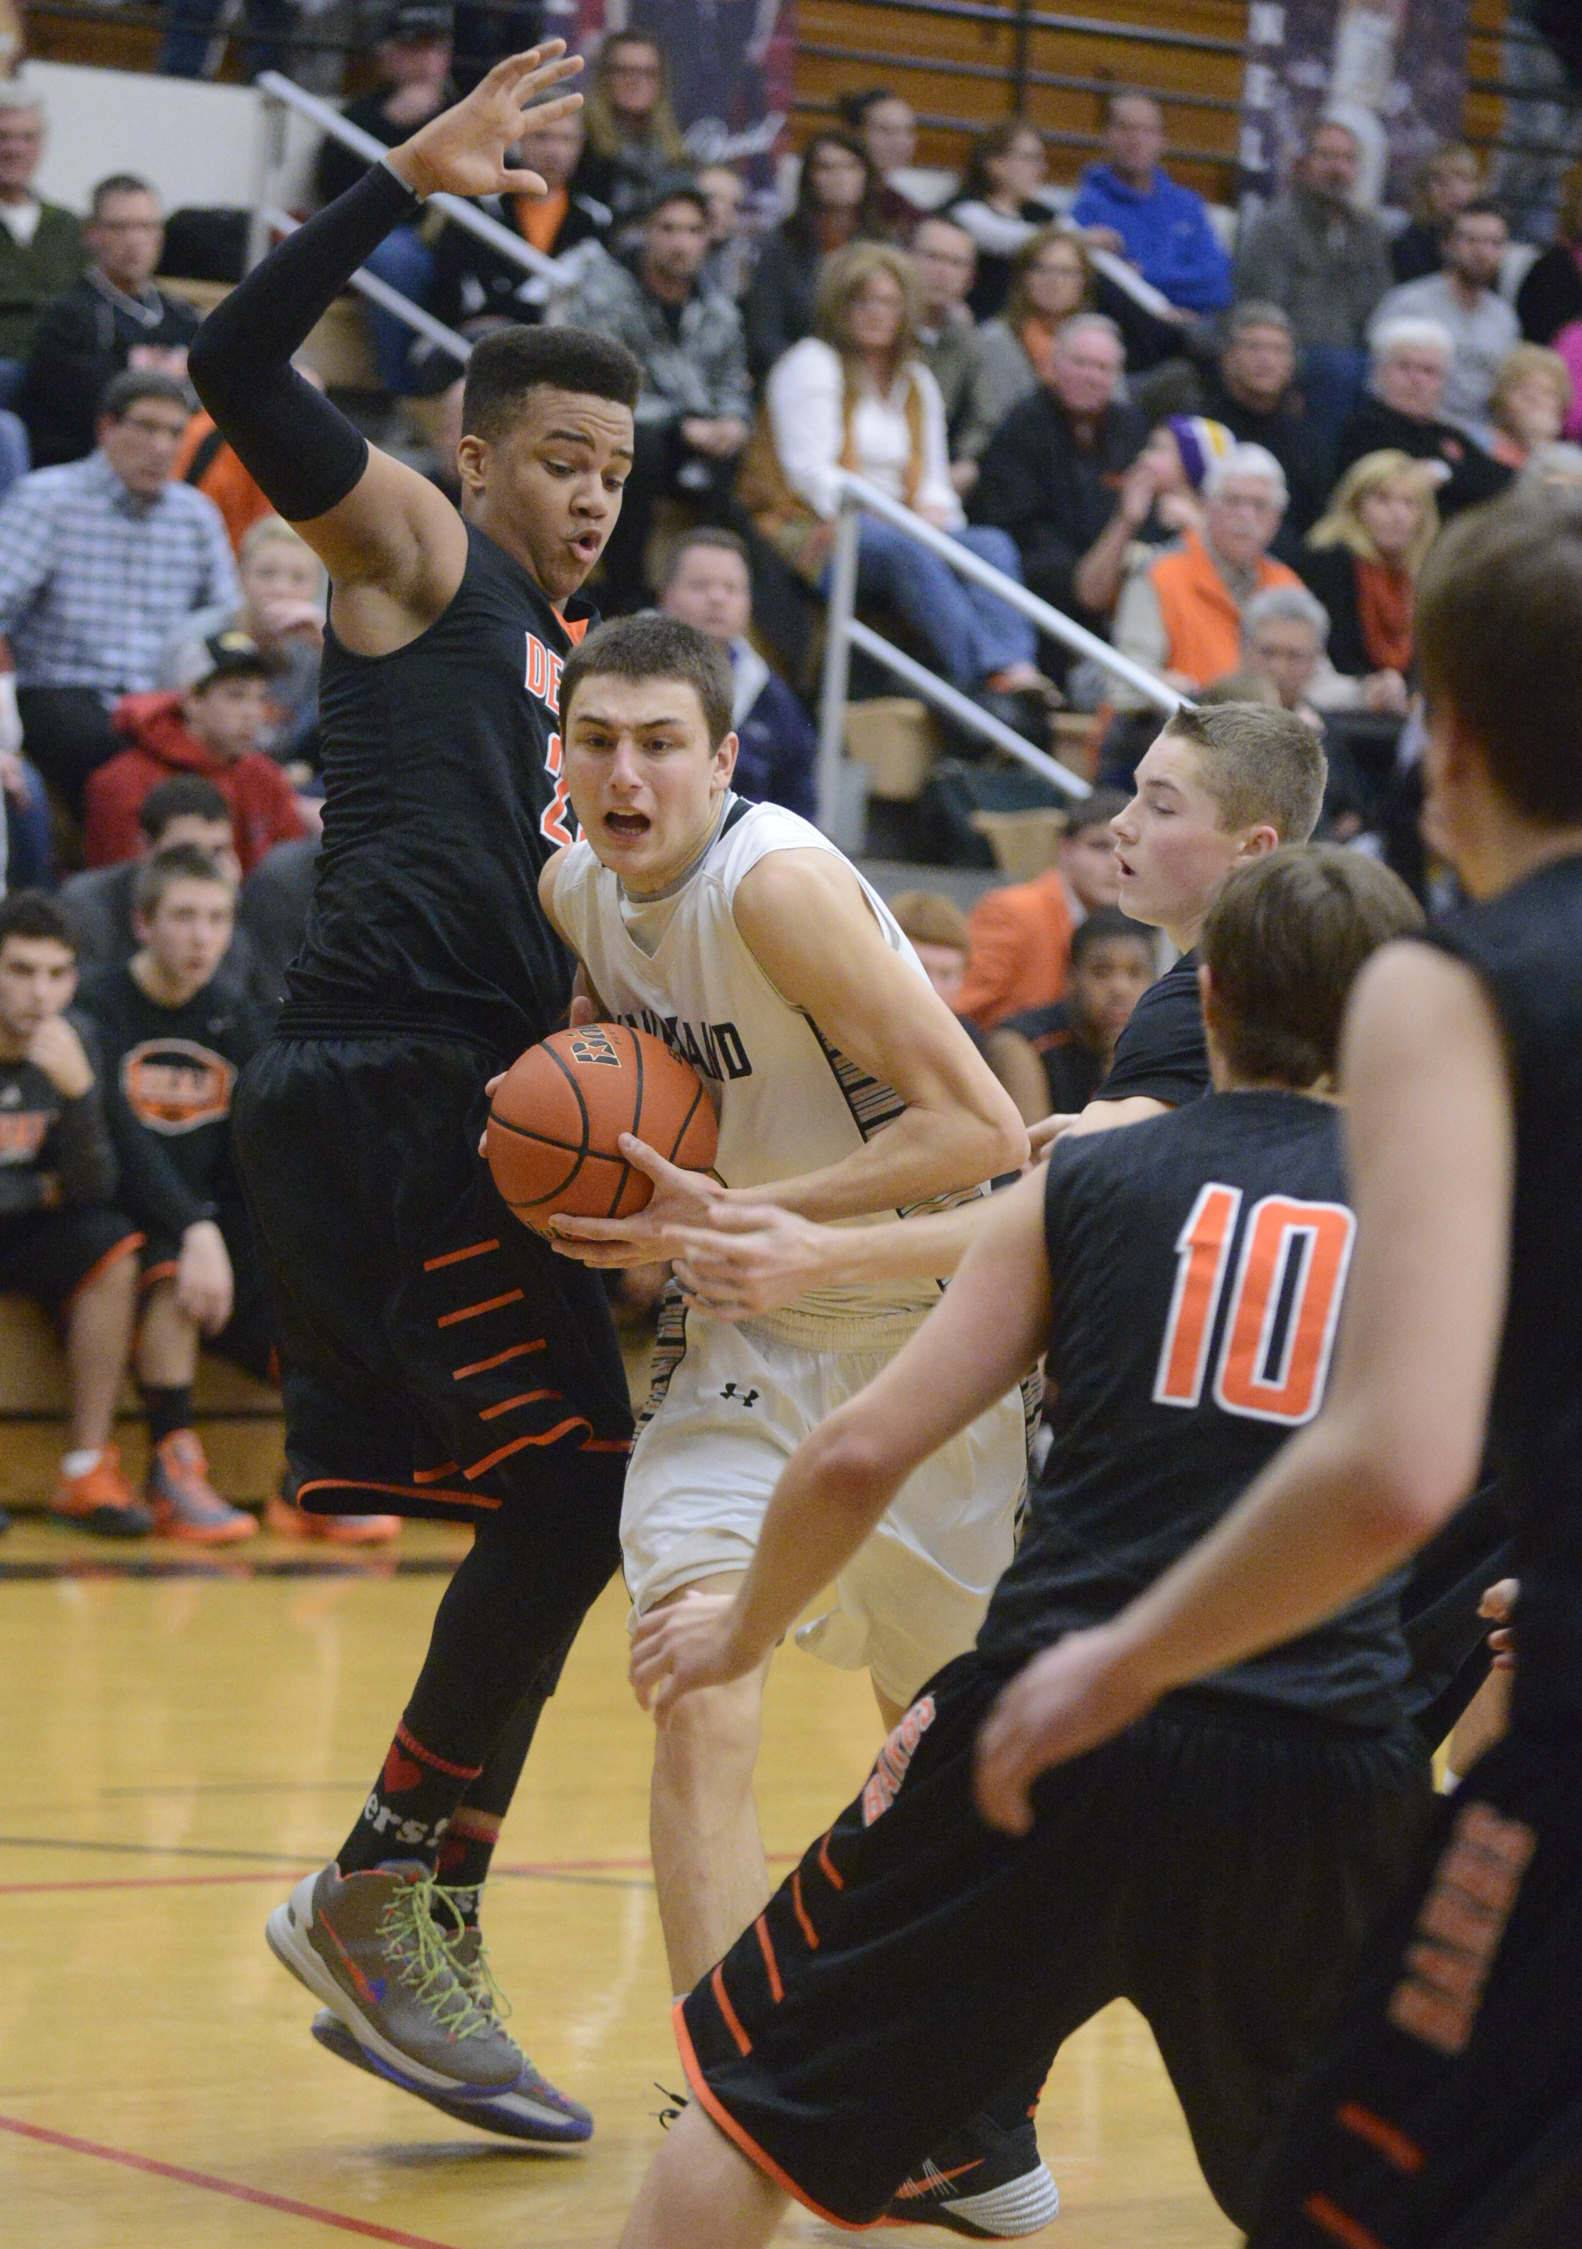 Images from the Dekalb vs. Kaneland boys basketball game Friday, February 28, 2014.